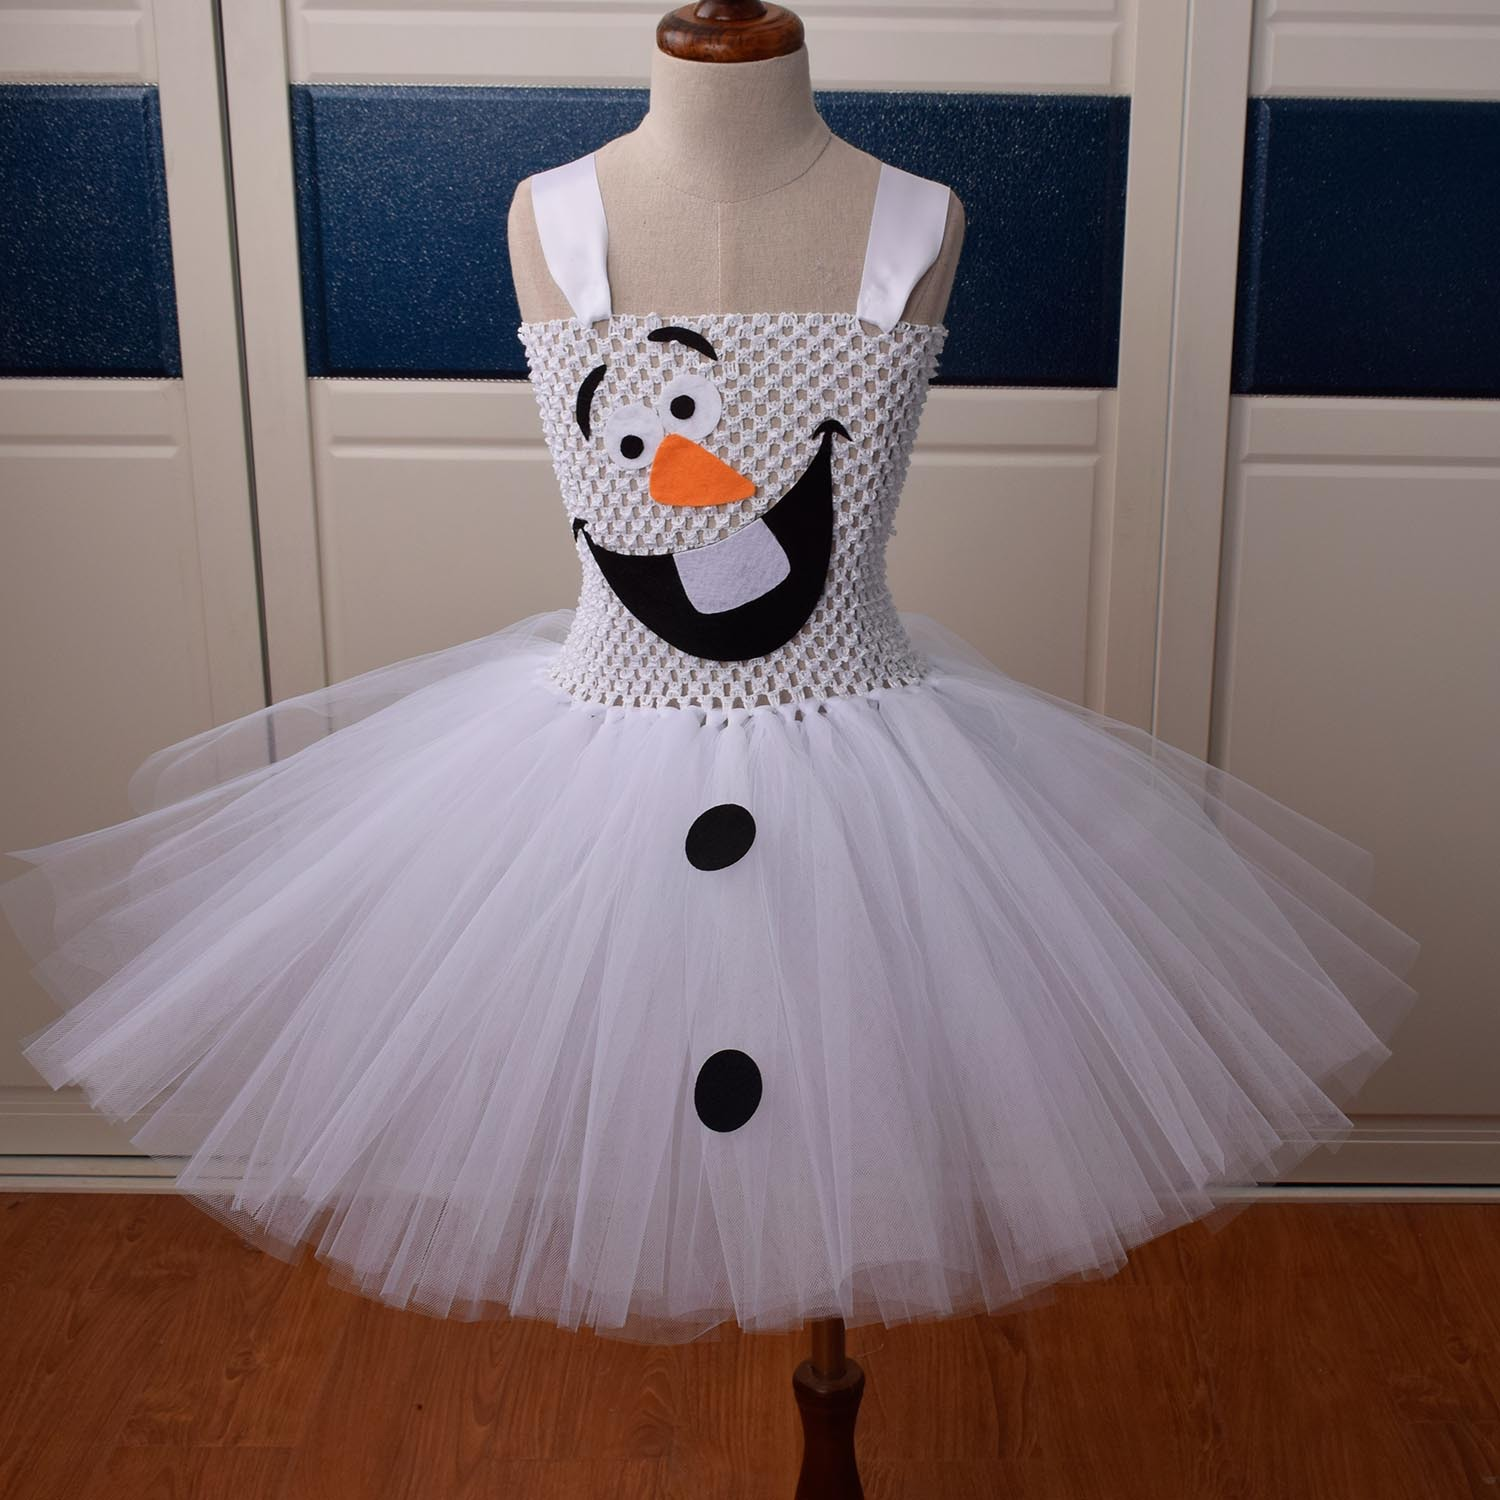 Kids Olaf Snowman Costume X Mas Girls Cute Tutu Dress Cosplay Christmas Party Outfit Gift For Infant Child Toddler Newborn Baby